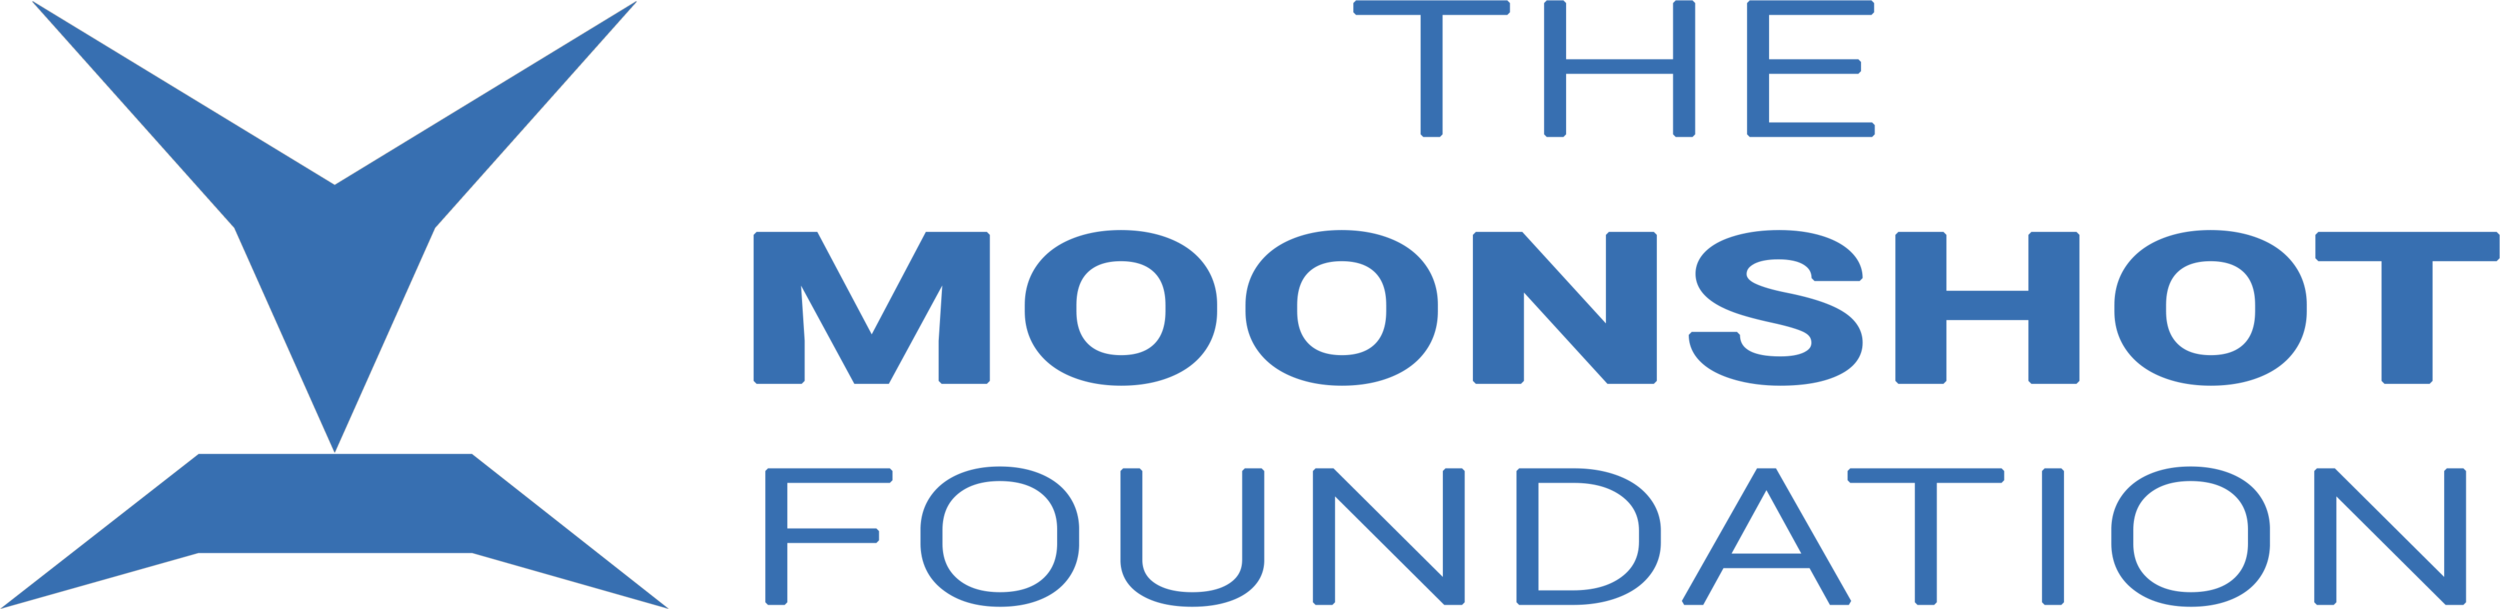 Moonshot Foundation Logo Blue.png